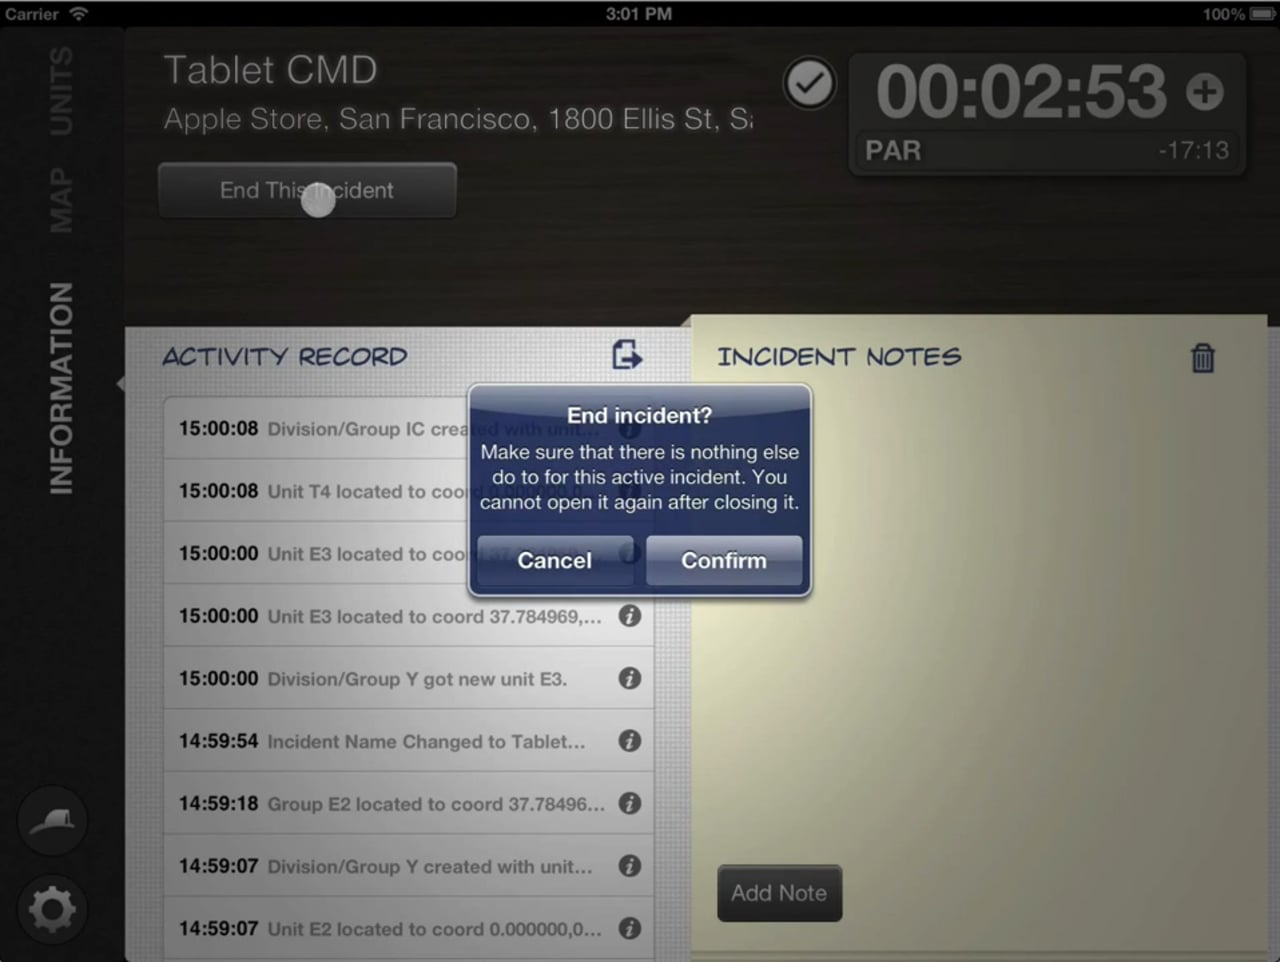 How to Close and Delete Incident in Tablet Command